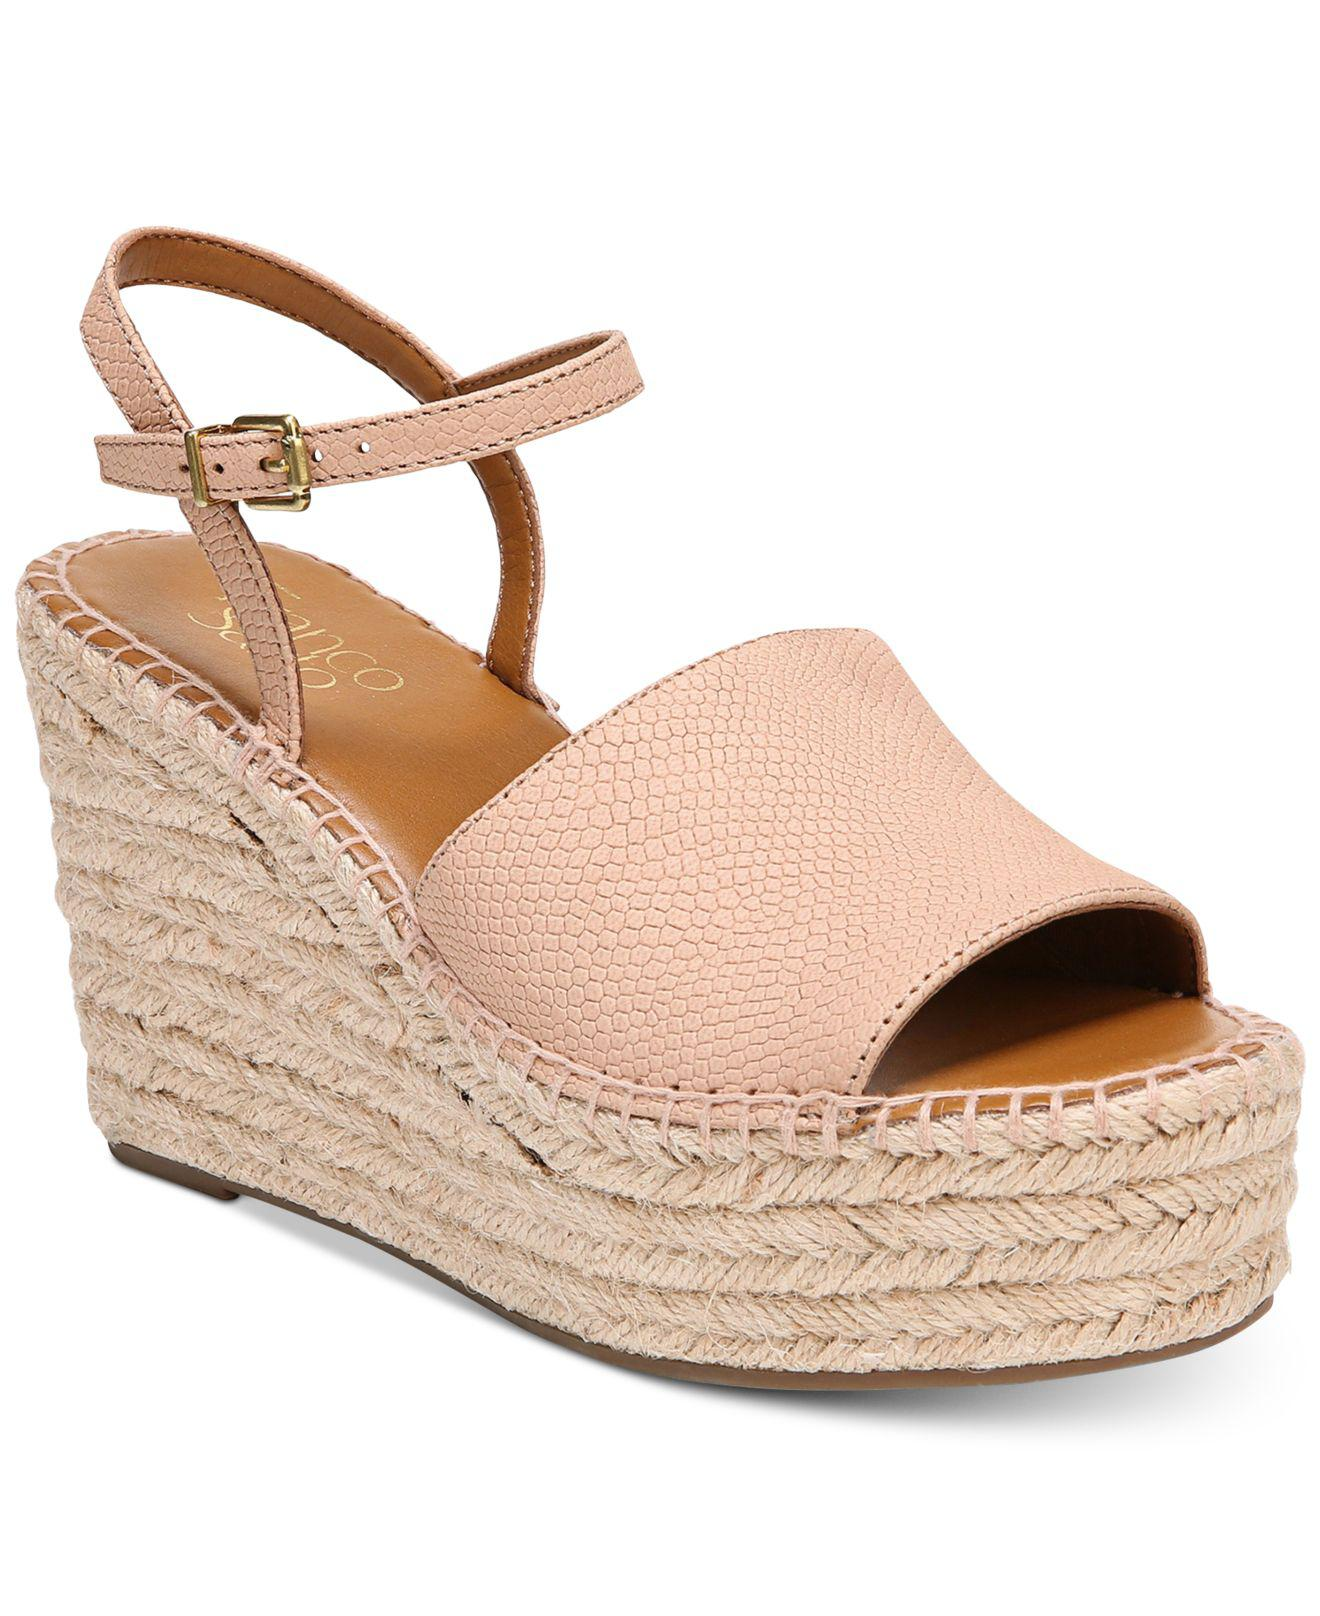 Franco Sarto Tula Platform Espadrille Wedge Sandals Women's Shoes AD33lD1gq